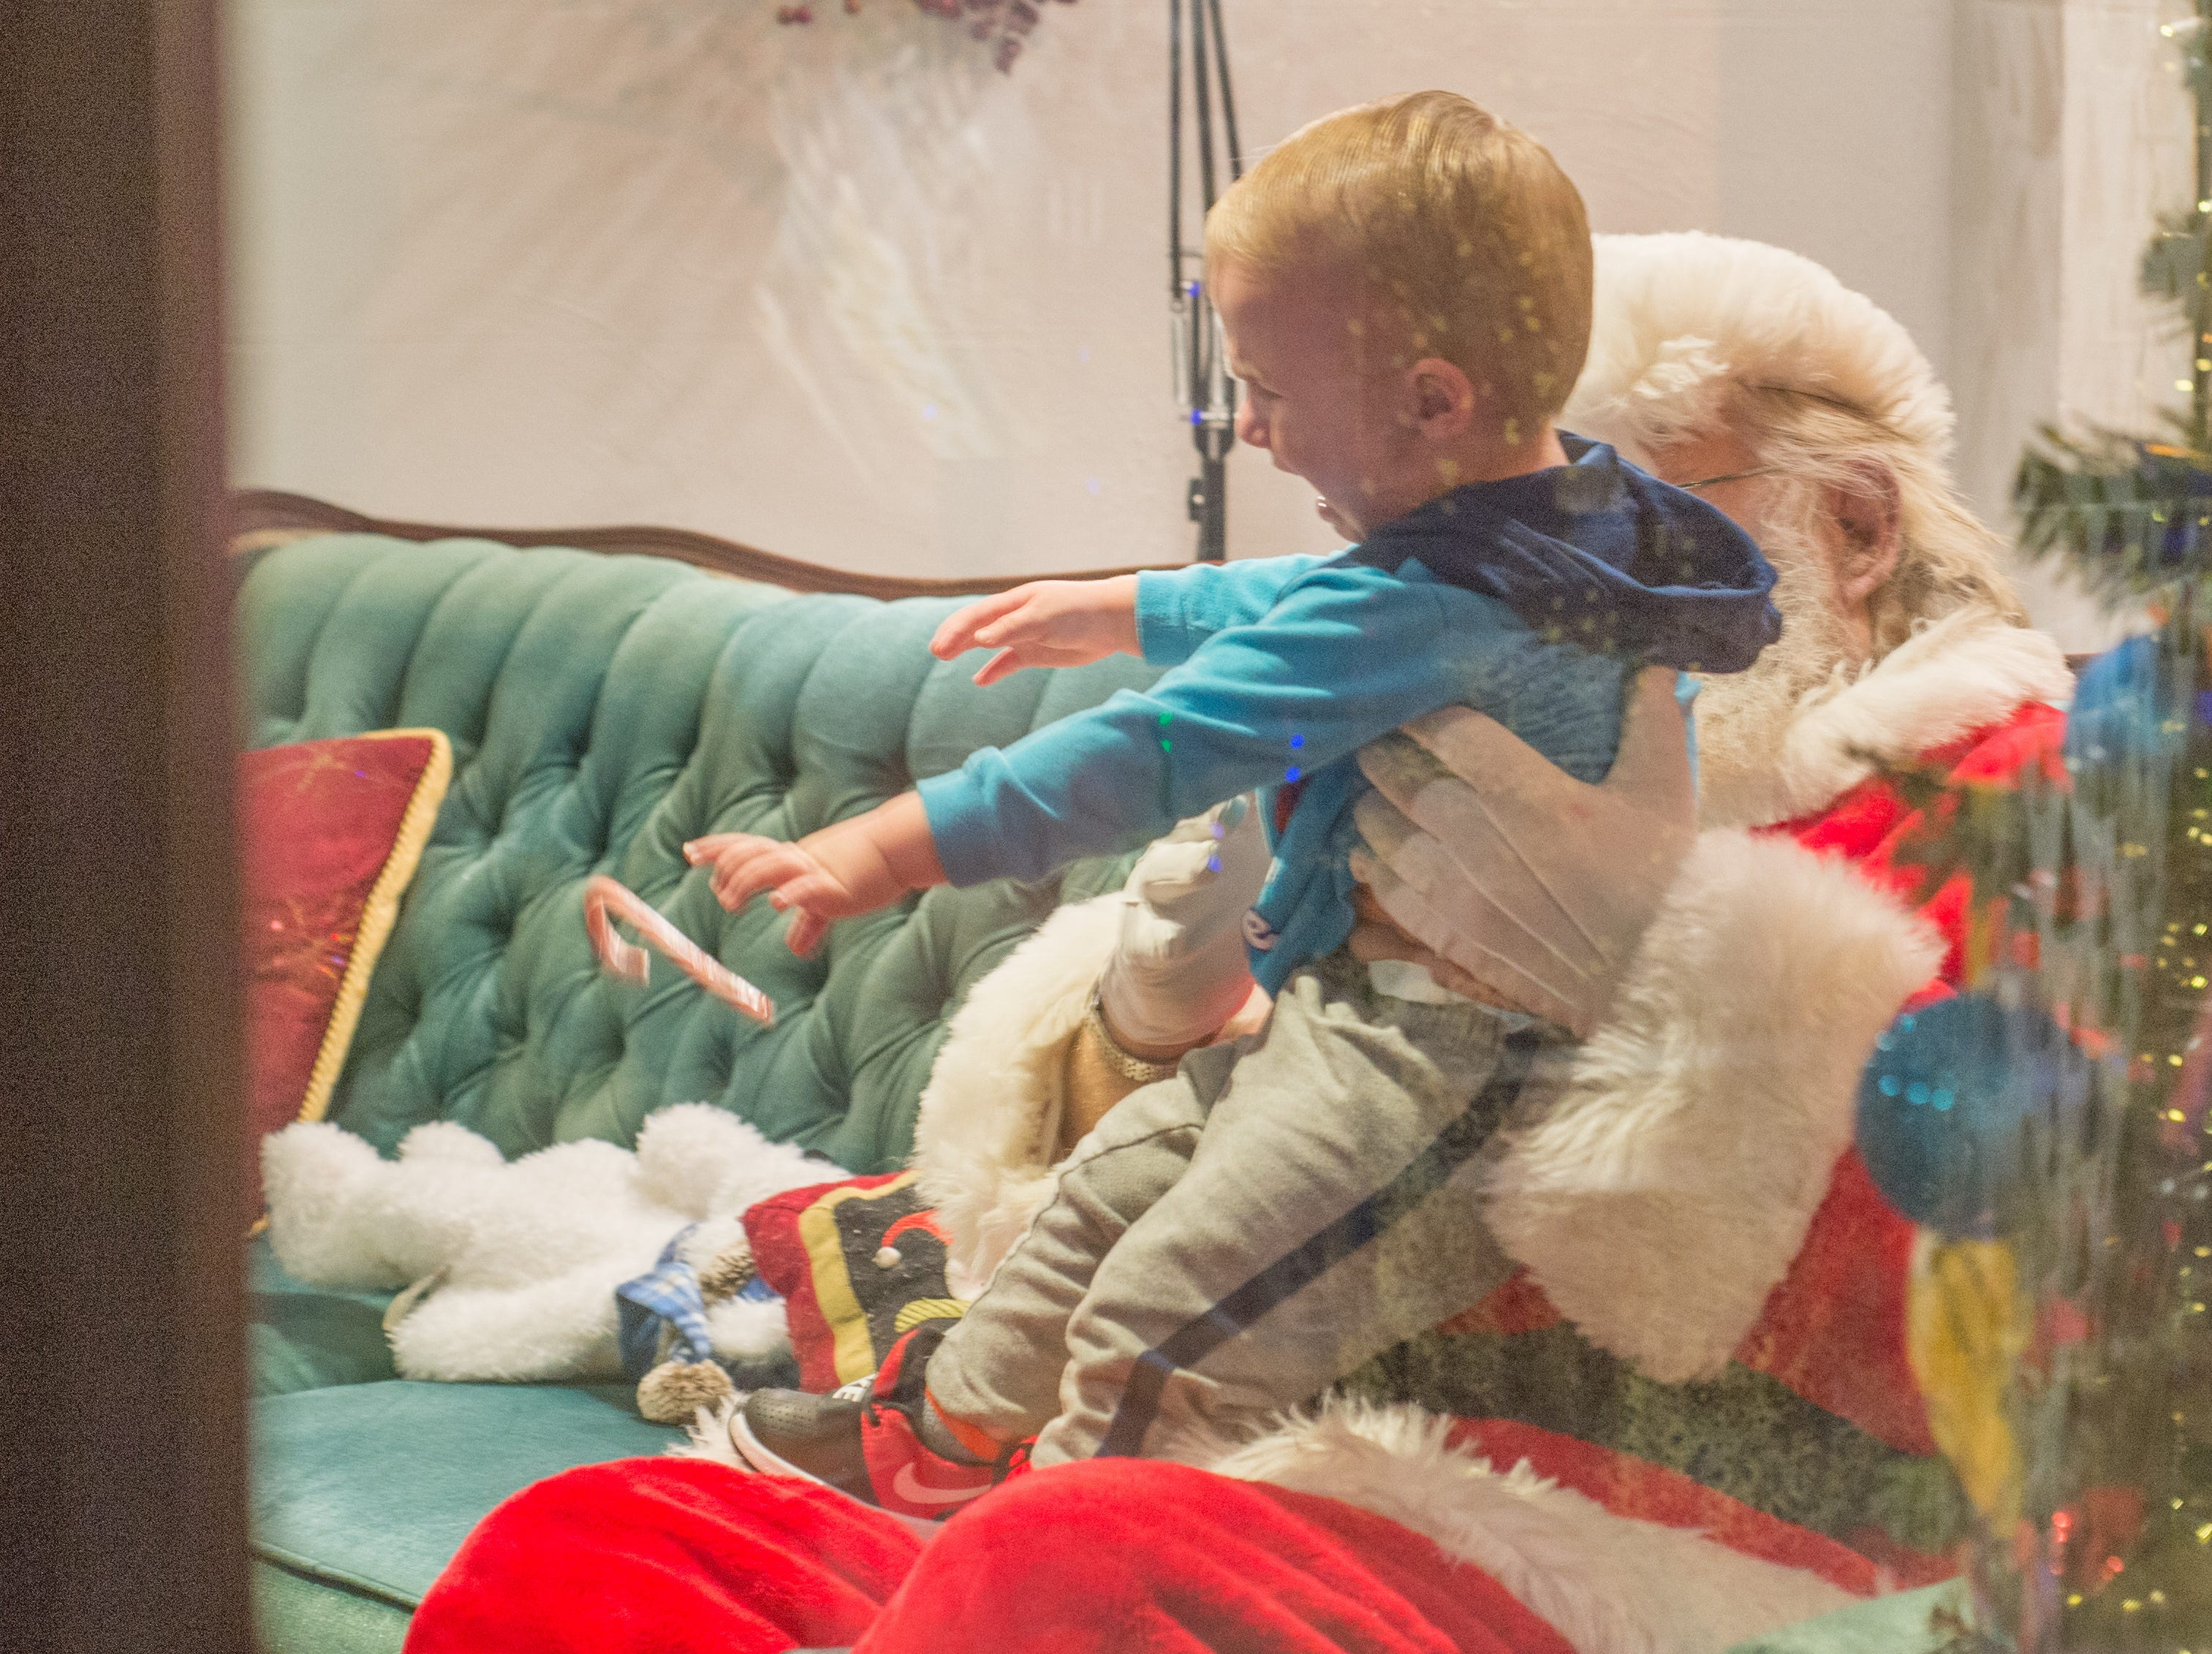 Not everyone was thrilled to meet Mr. Claus during the Santa on the Square event presented by Historic Downtown Gallatin at 106 Public Square on Saturday, Dec. 22.